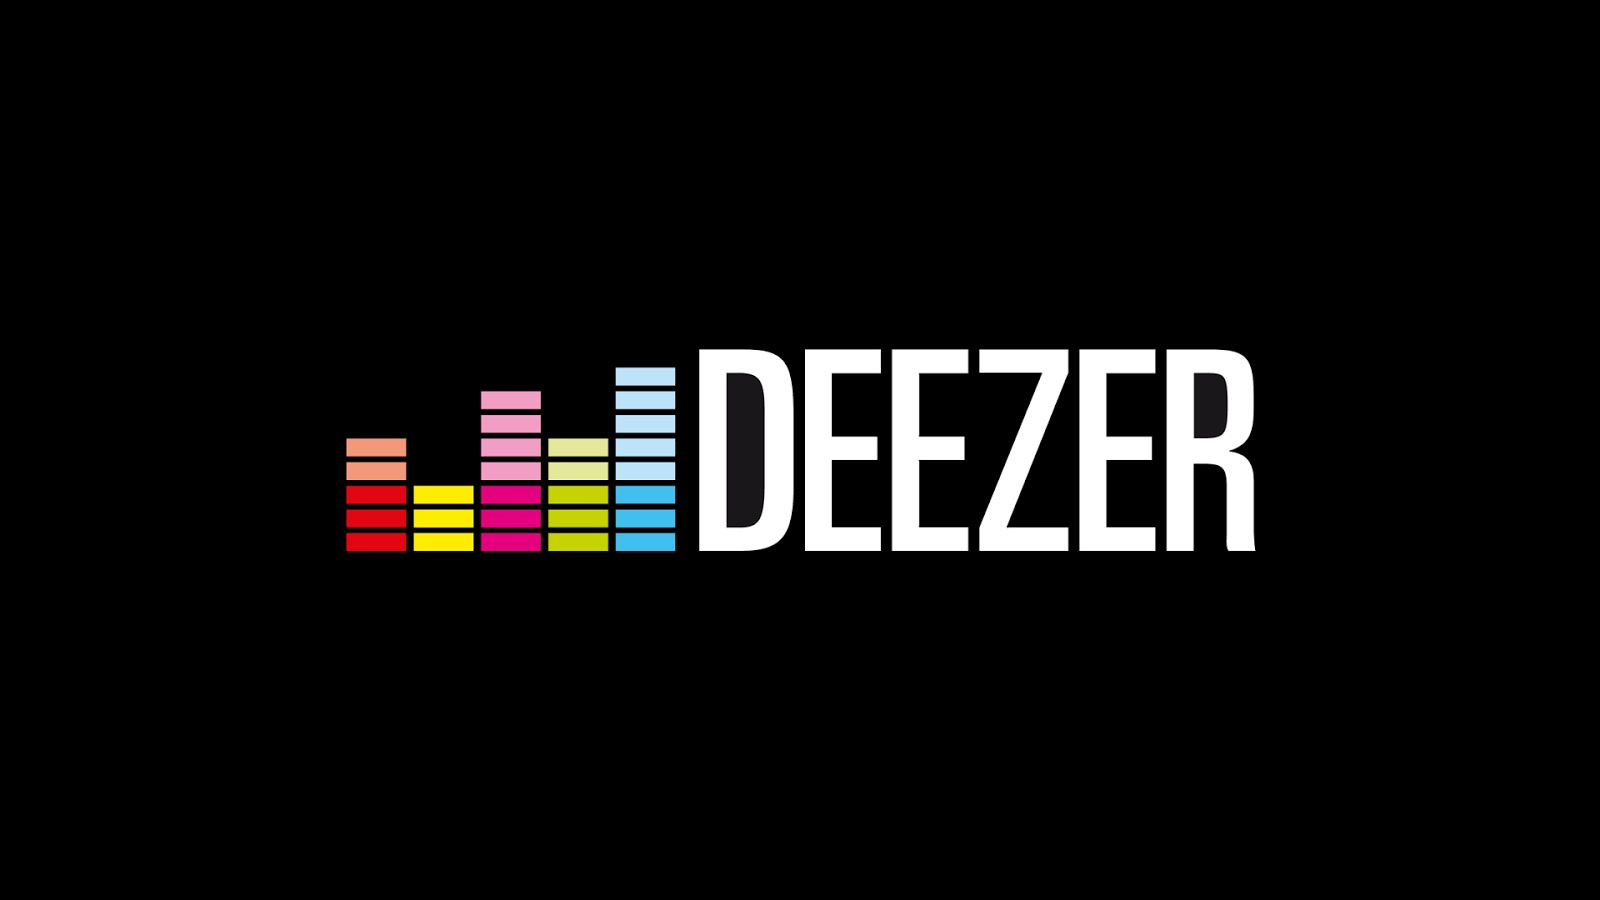 DEEZER (Streaming Portal)